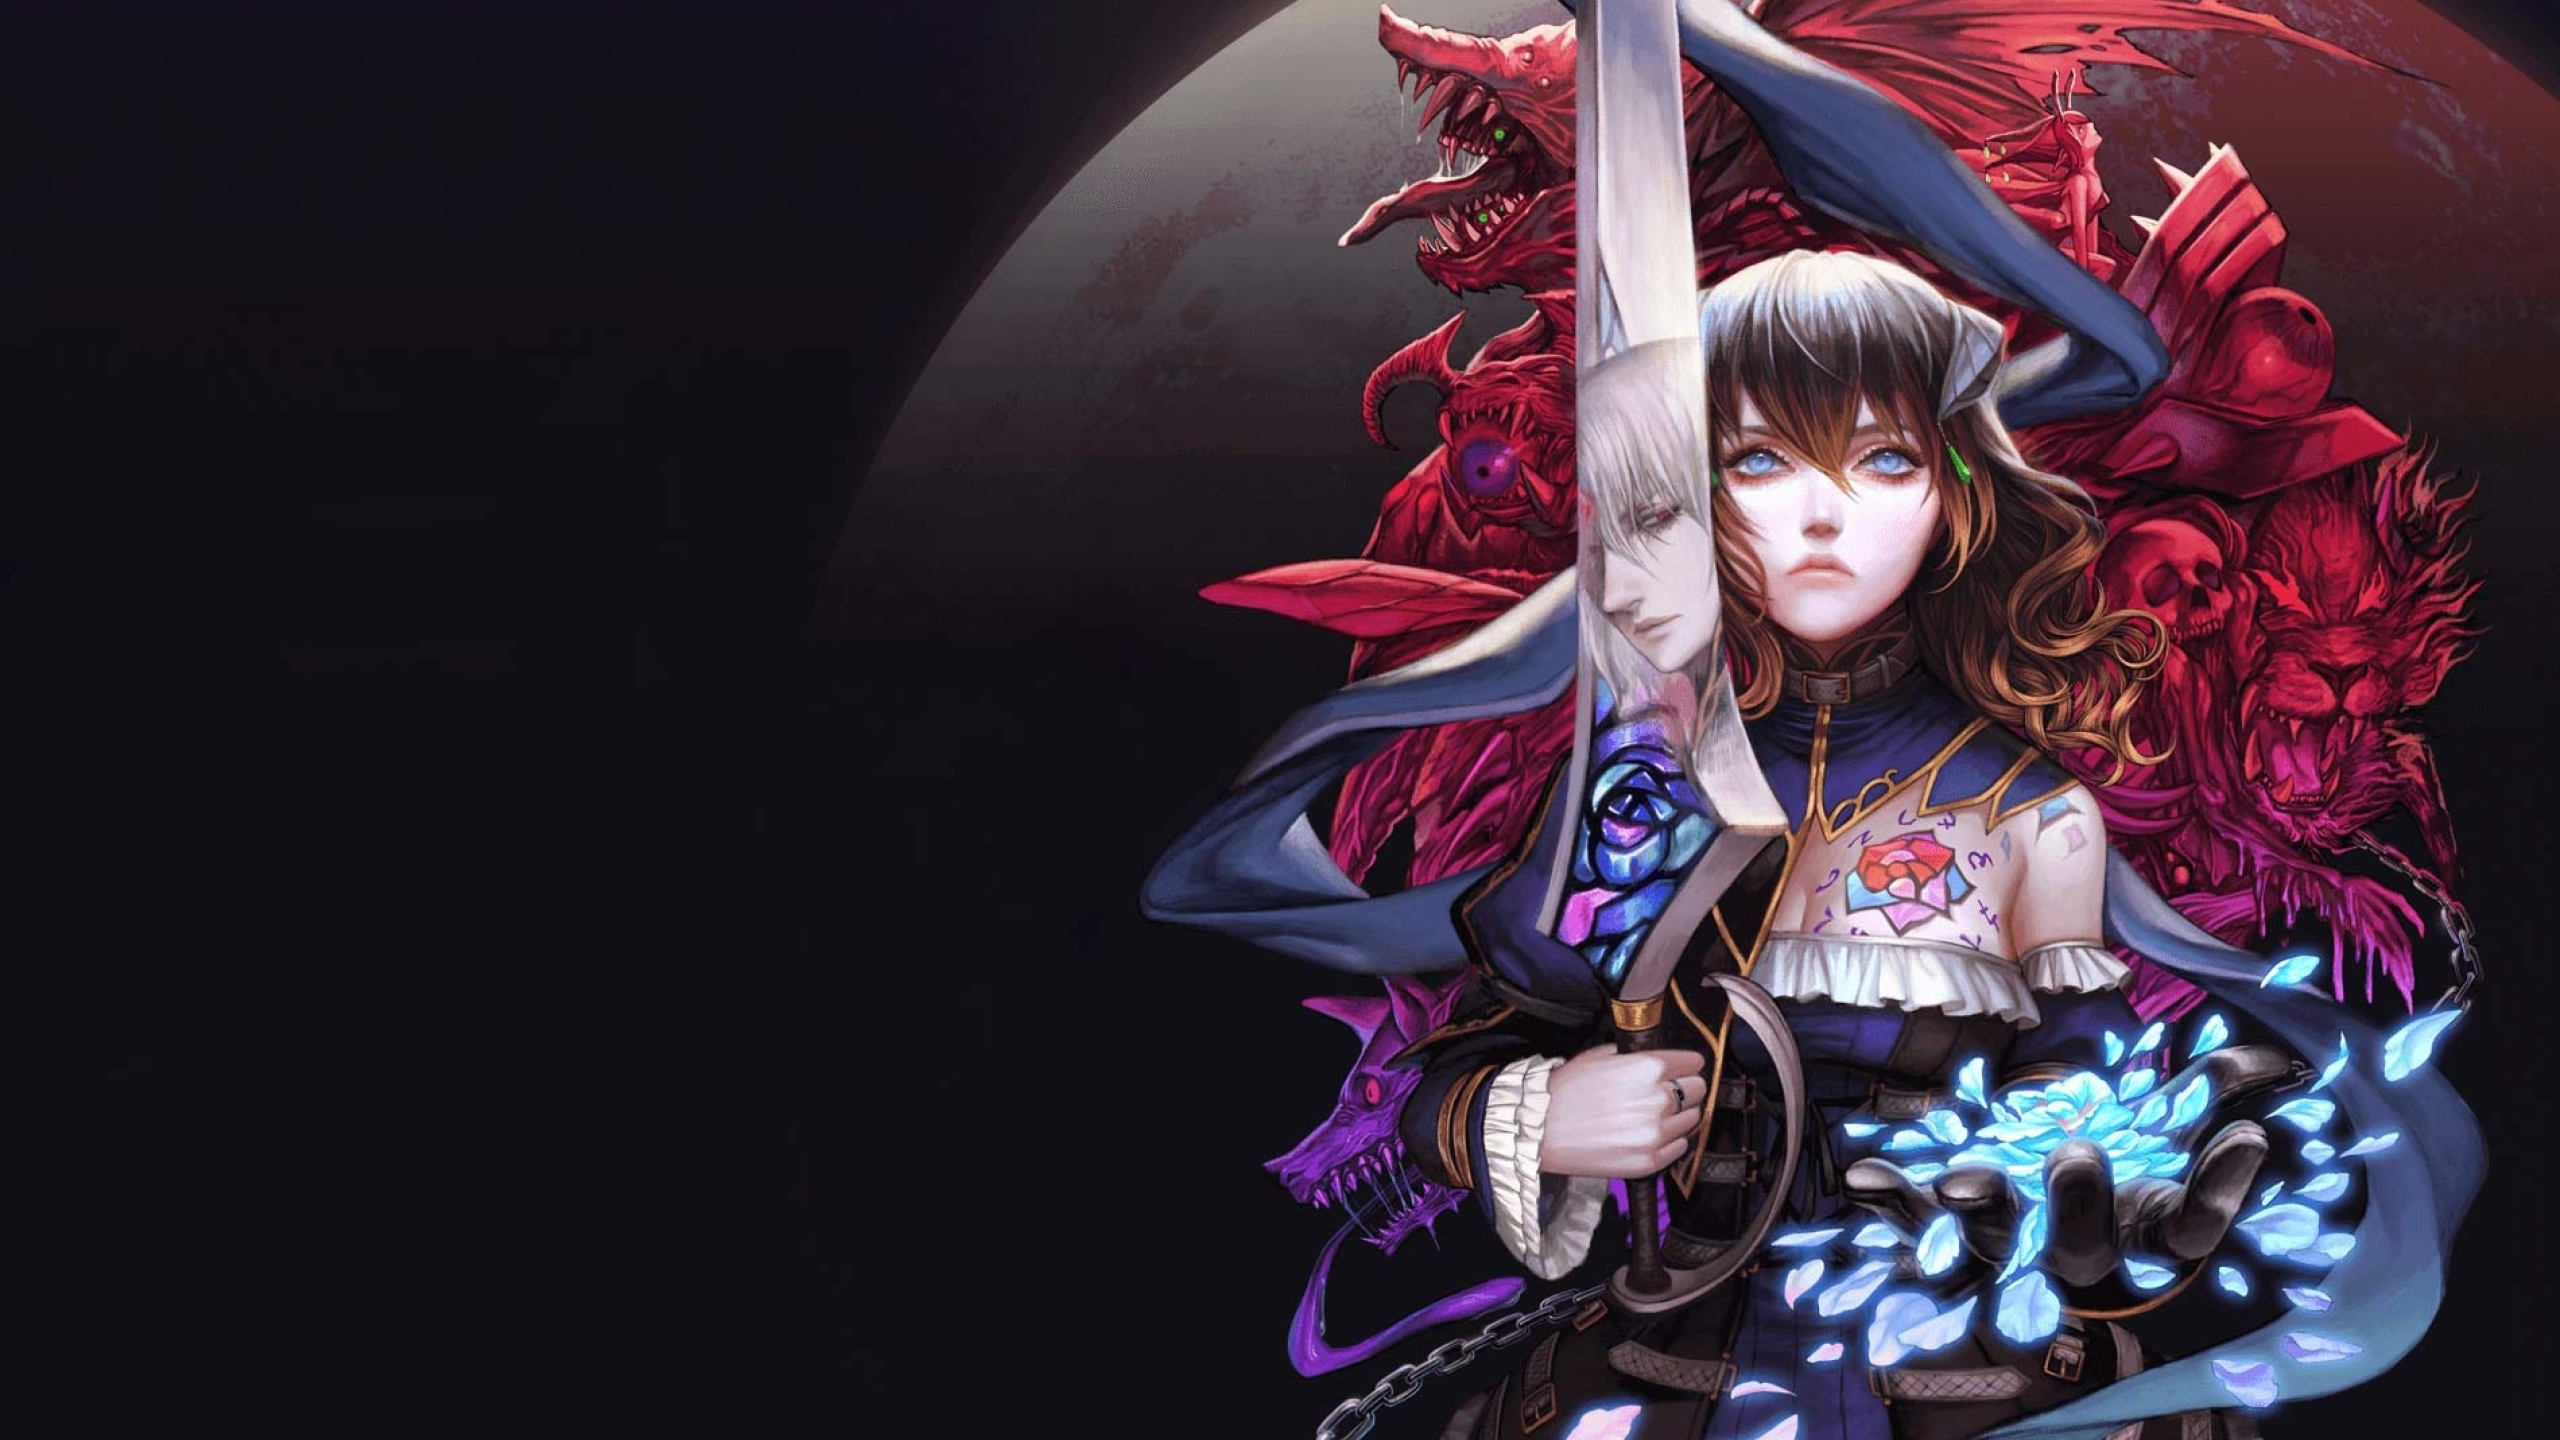 2560x1440 Bloodstained Ritual of the Night 1440P Resolution Wallpaper, HD Games 4K Wallpapers ...